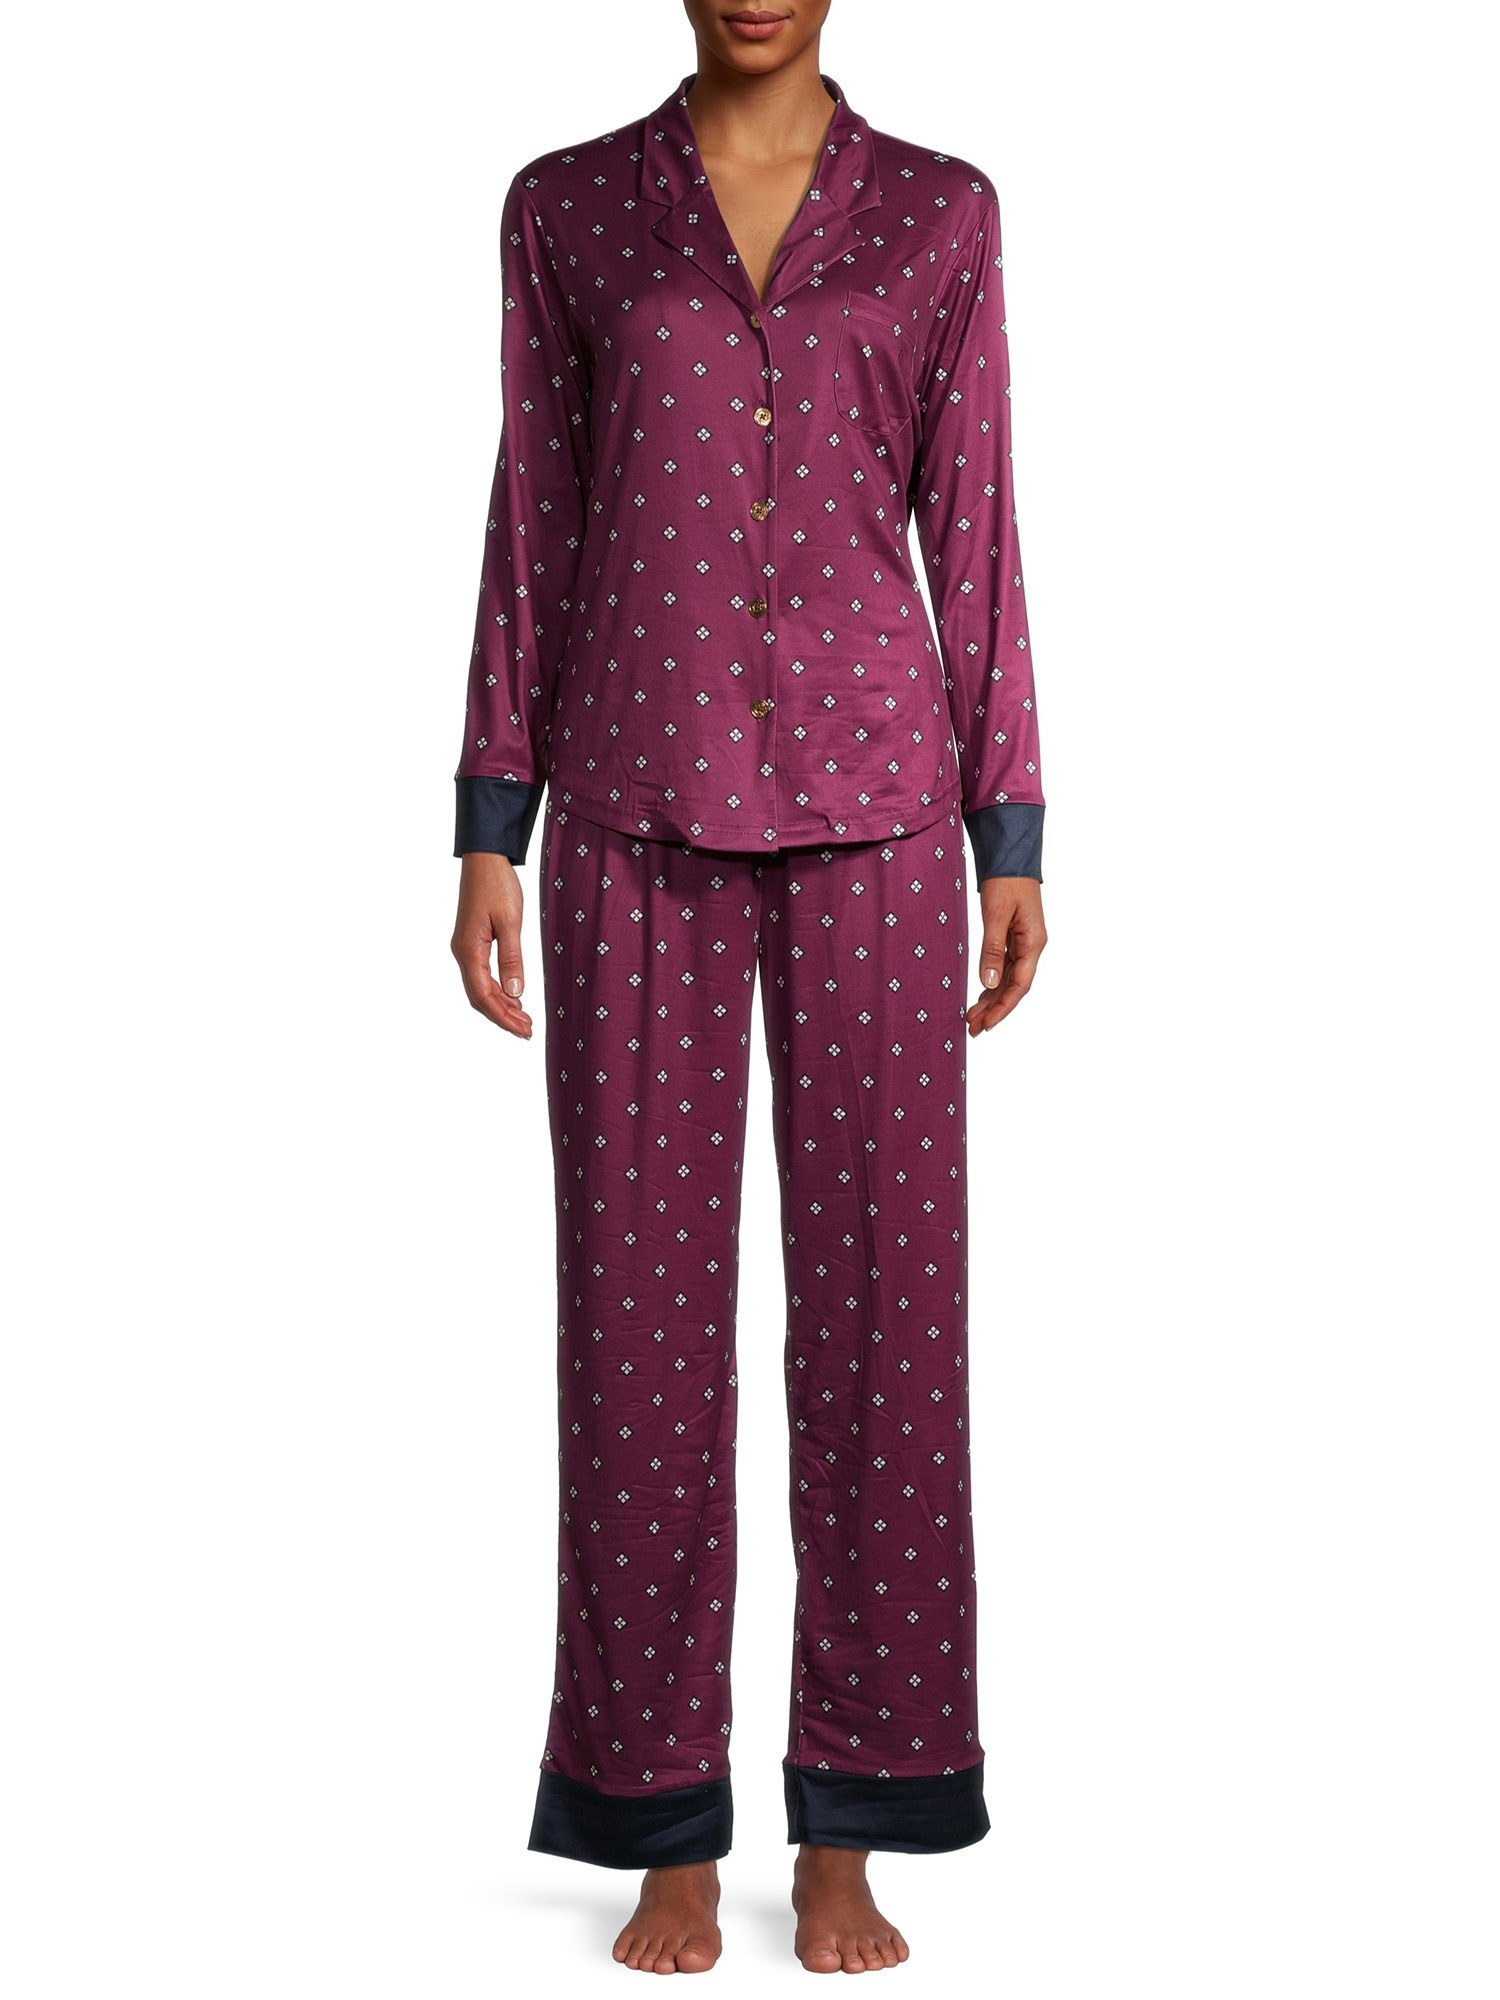 The pajama set worn by a model